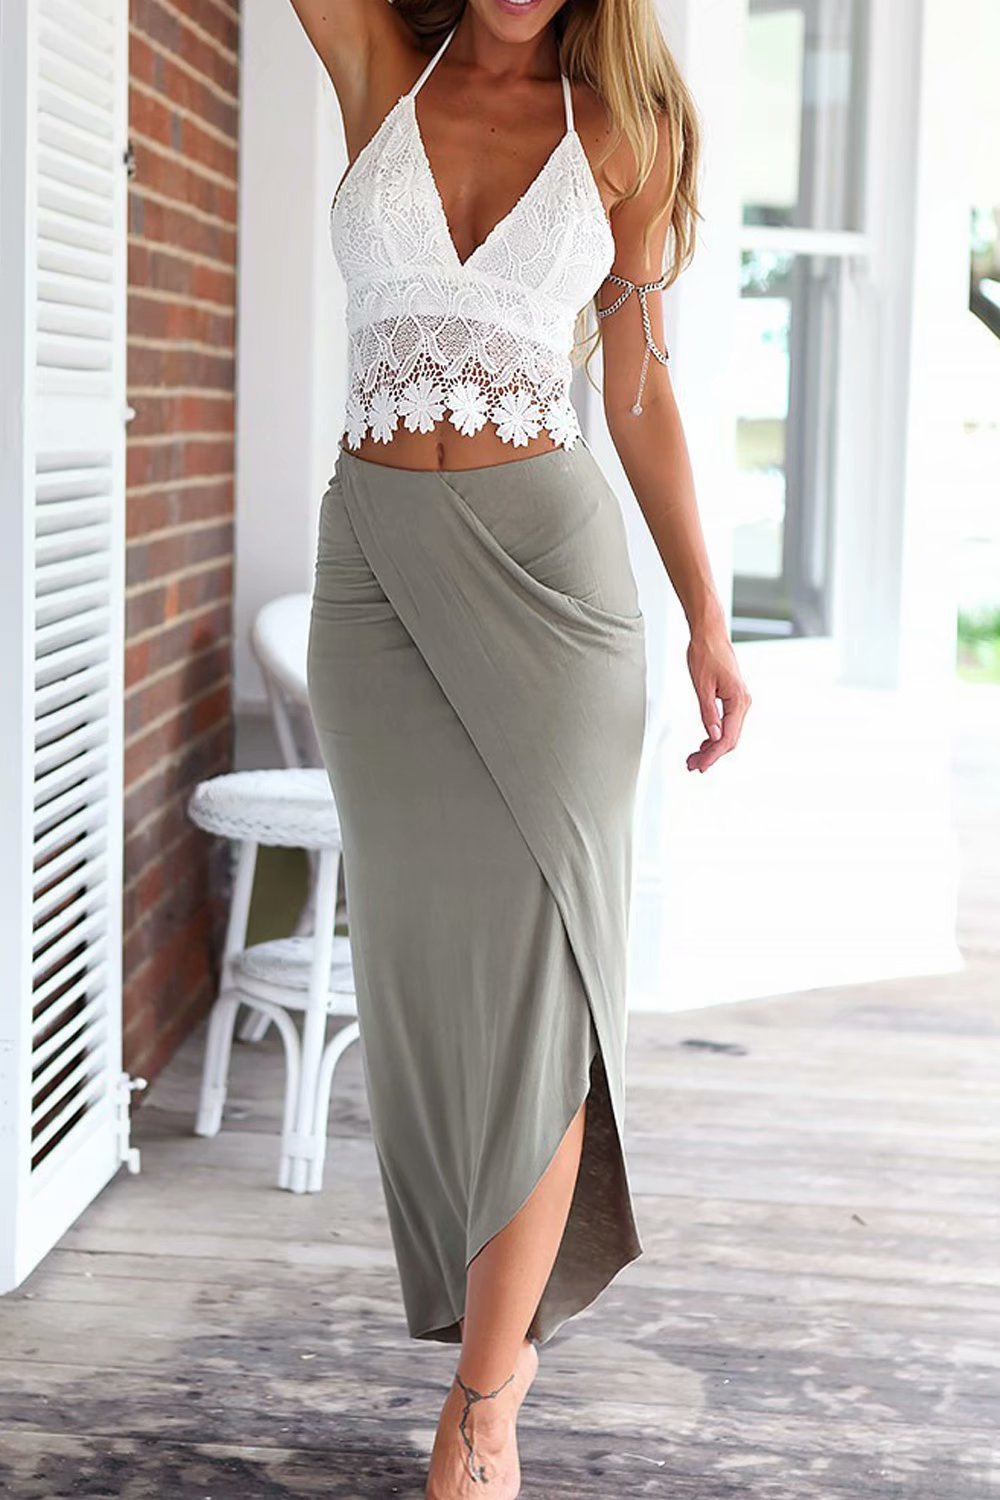 jasit Skirt Set, Women Summer Two Pieces V Neck Backless Lace Tops+Irregular Long Skirt S by jasit (Image #2)